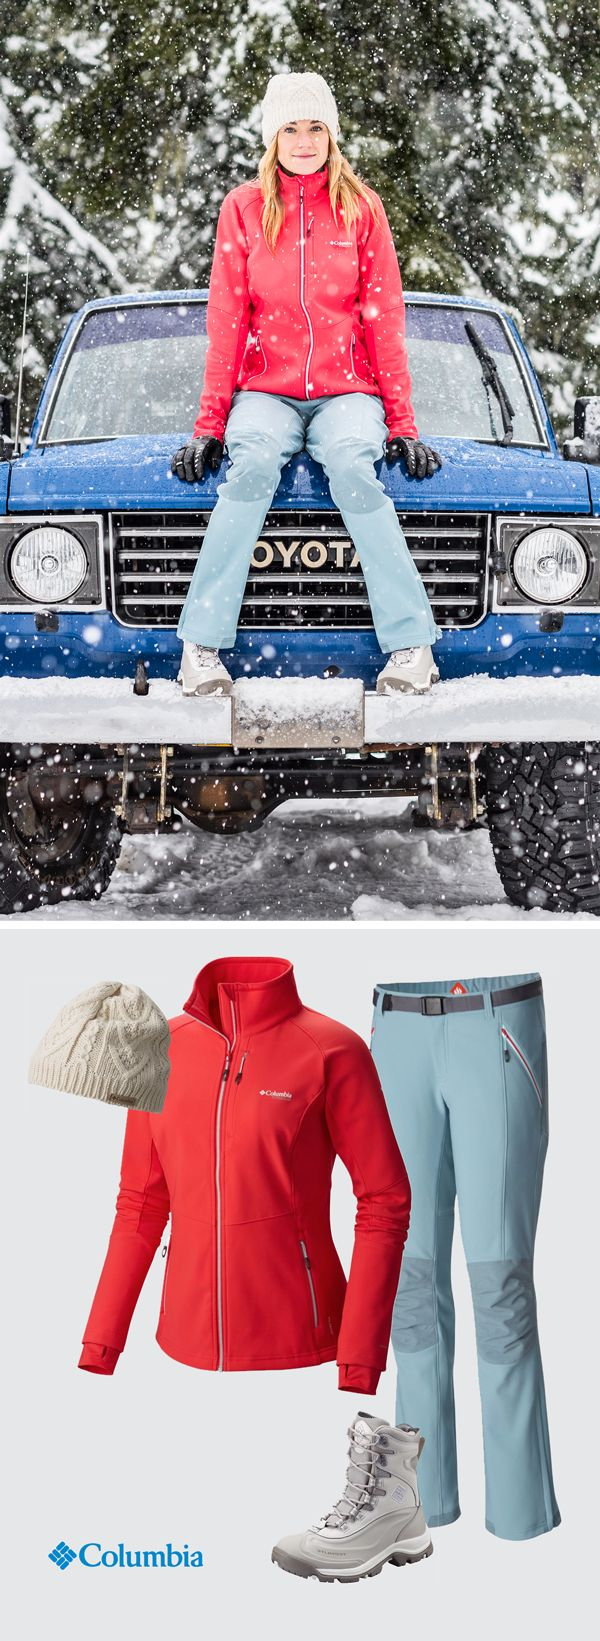 Four must-haves for winter. When the mountains call, think layers. Columbia ski and snow gear will keep you nice and warm even when Mother Nature is her most brutal.